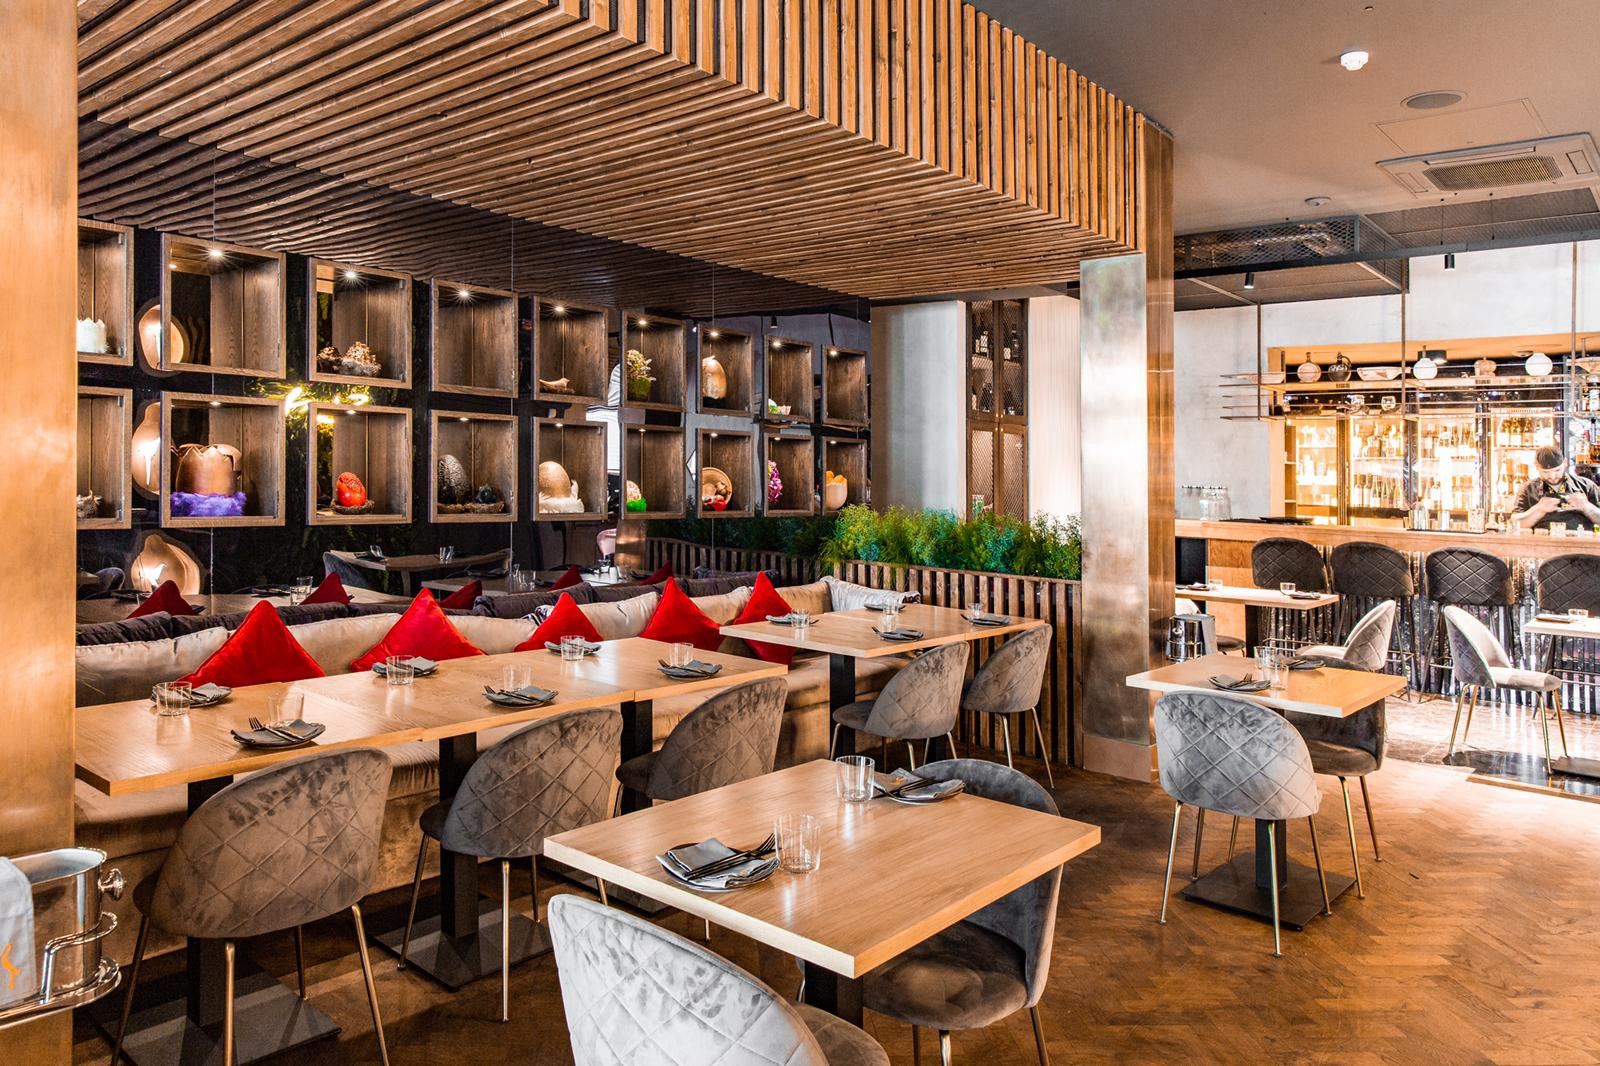 World Class Stork Restaurant Opens in London